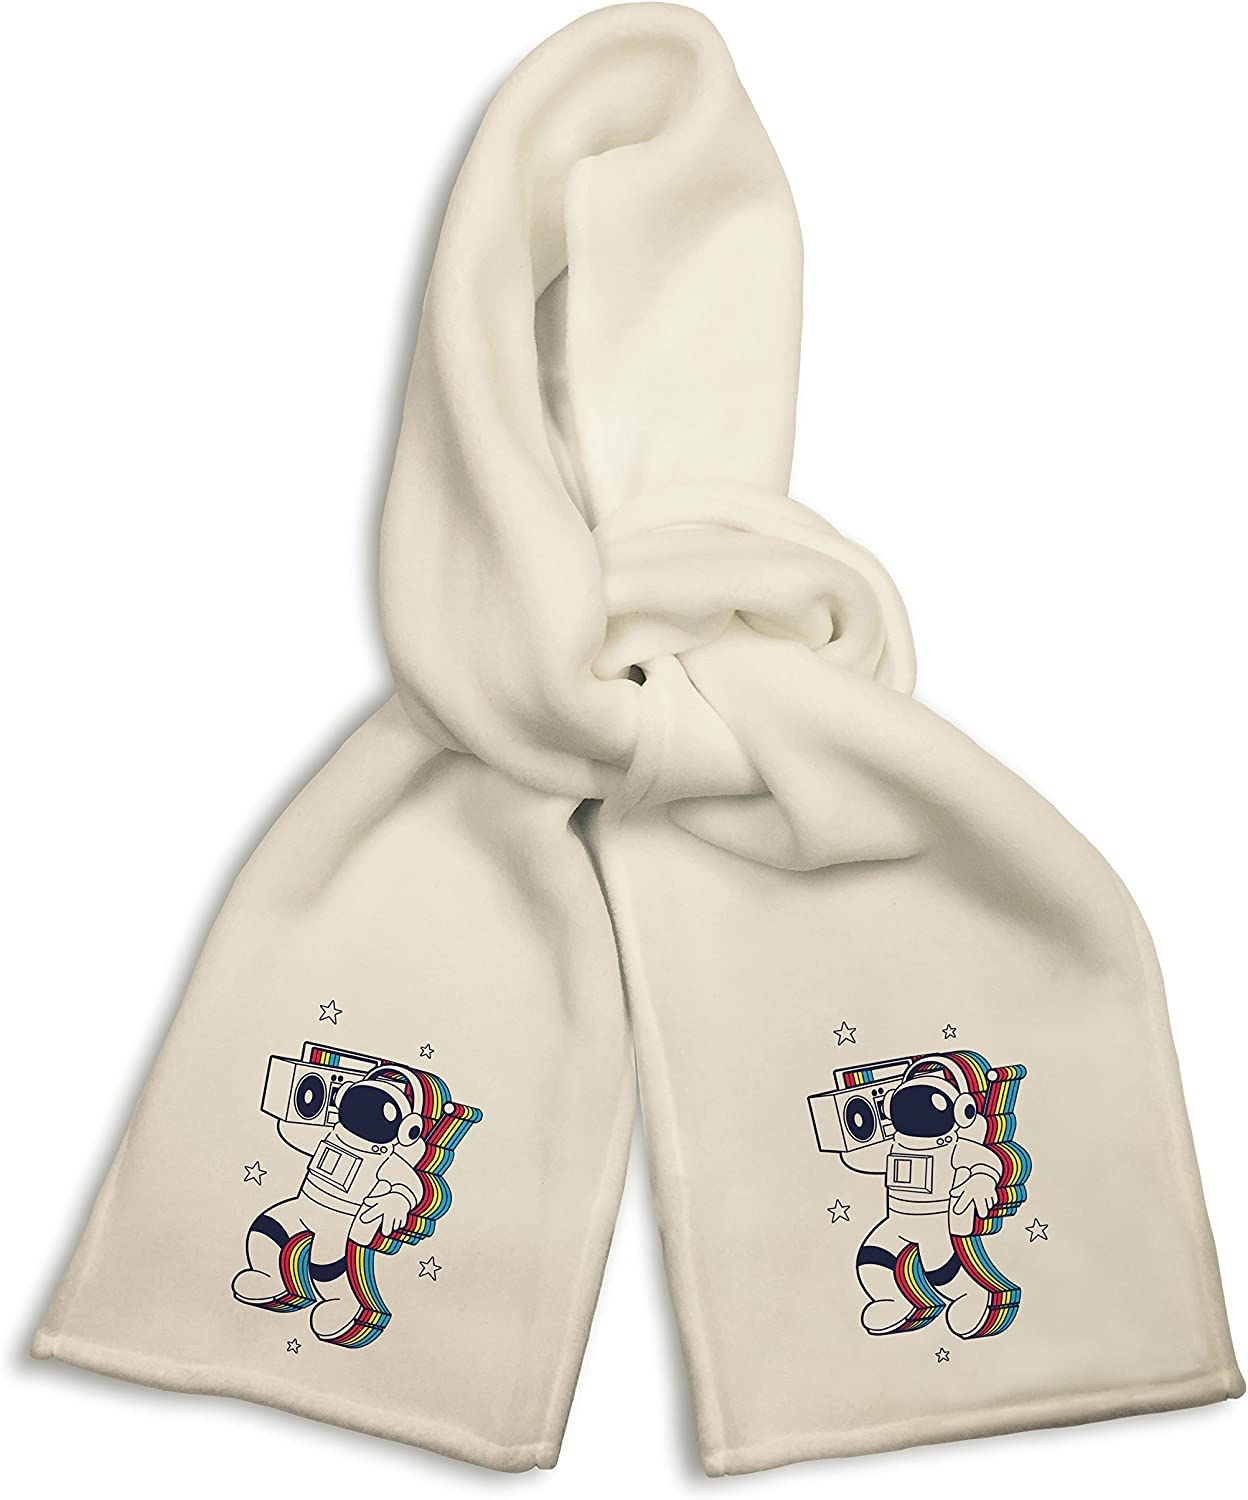 White Winter Scarf - Rockin Space Man Astronaut w/Boombox Colorful